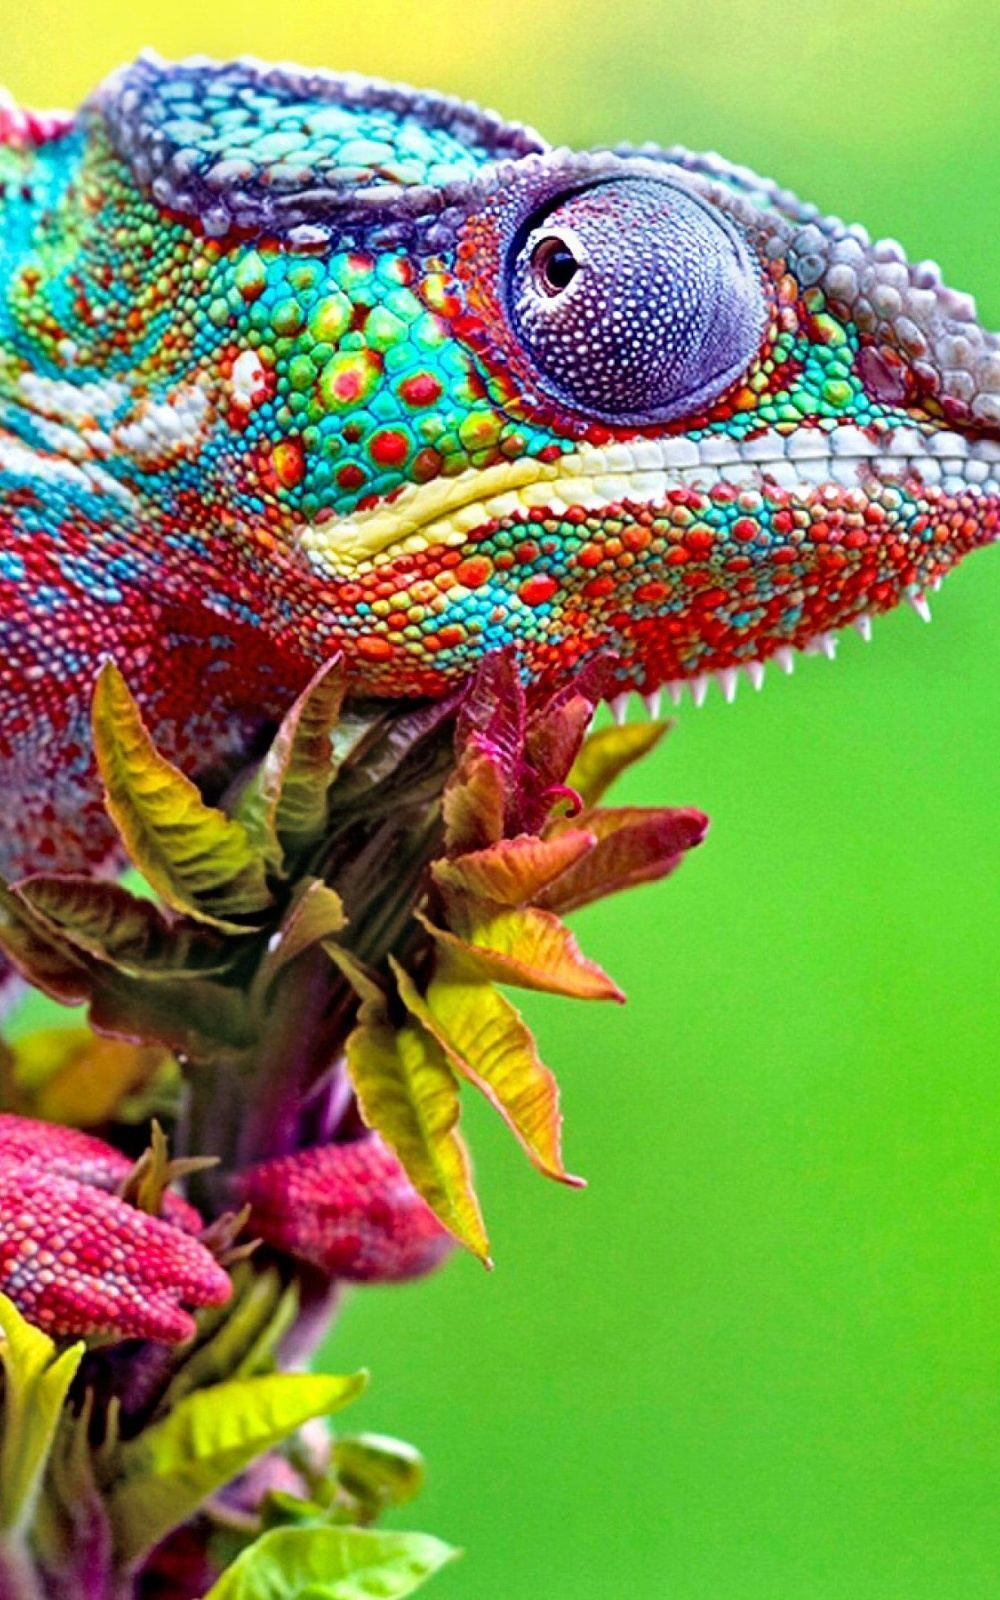 Colorful Chameleon Close Up iPhone 6 Plus HD Wallpaper